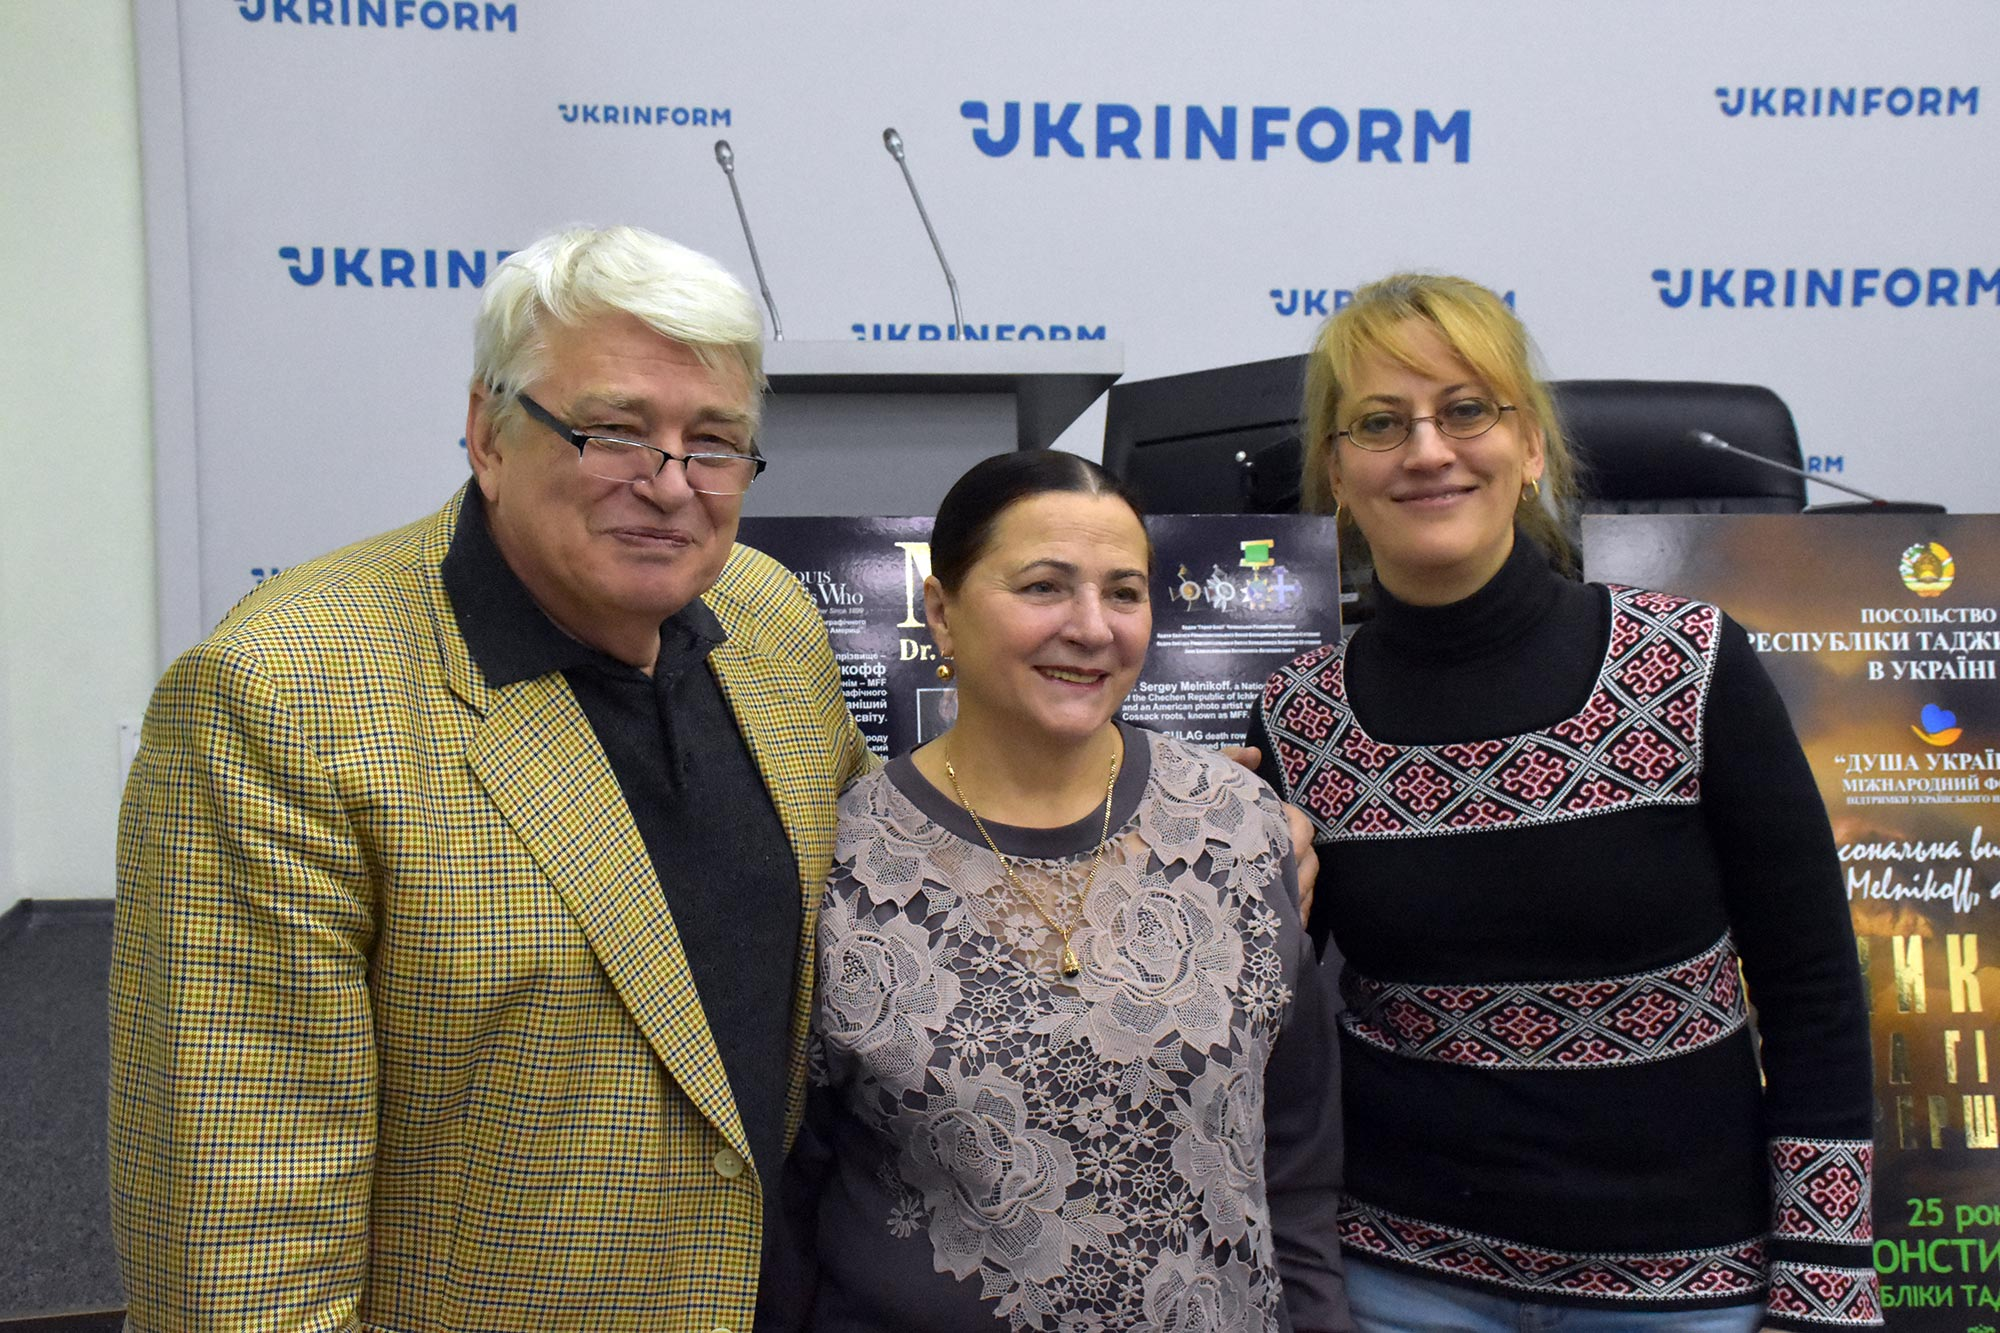 Sergey Melnikoff, Nina Matvienko, and Tatiana Alexandrova. Genius: a supercomputer has created a unique portrait of Borys Paton